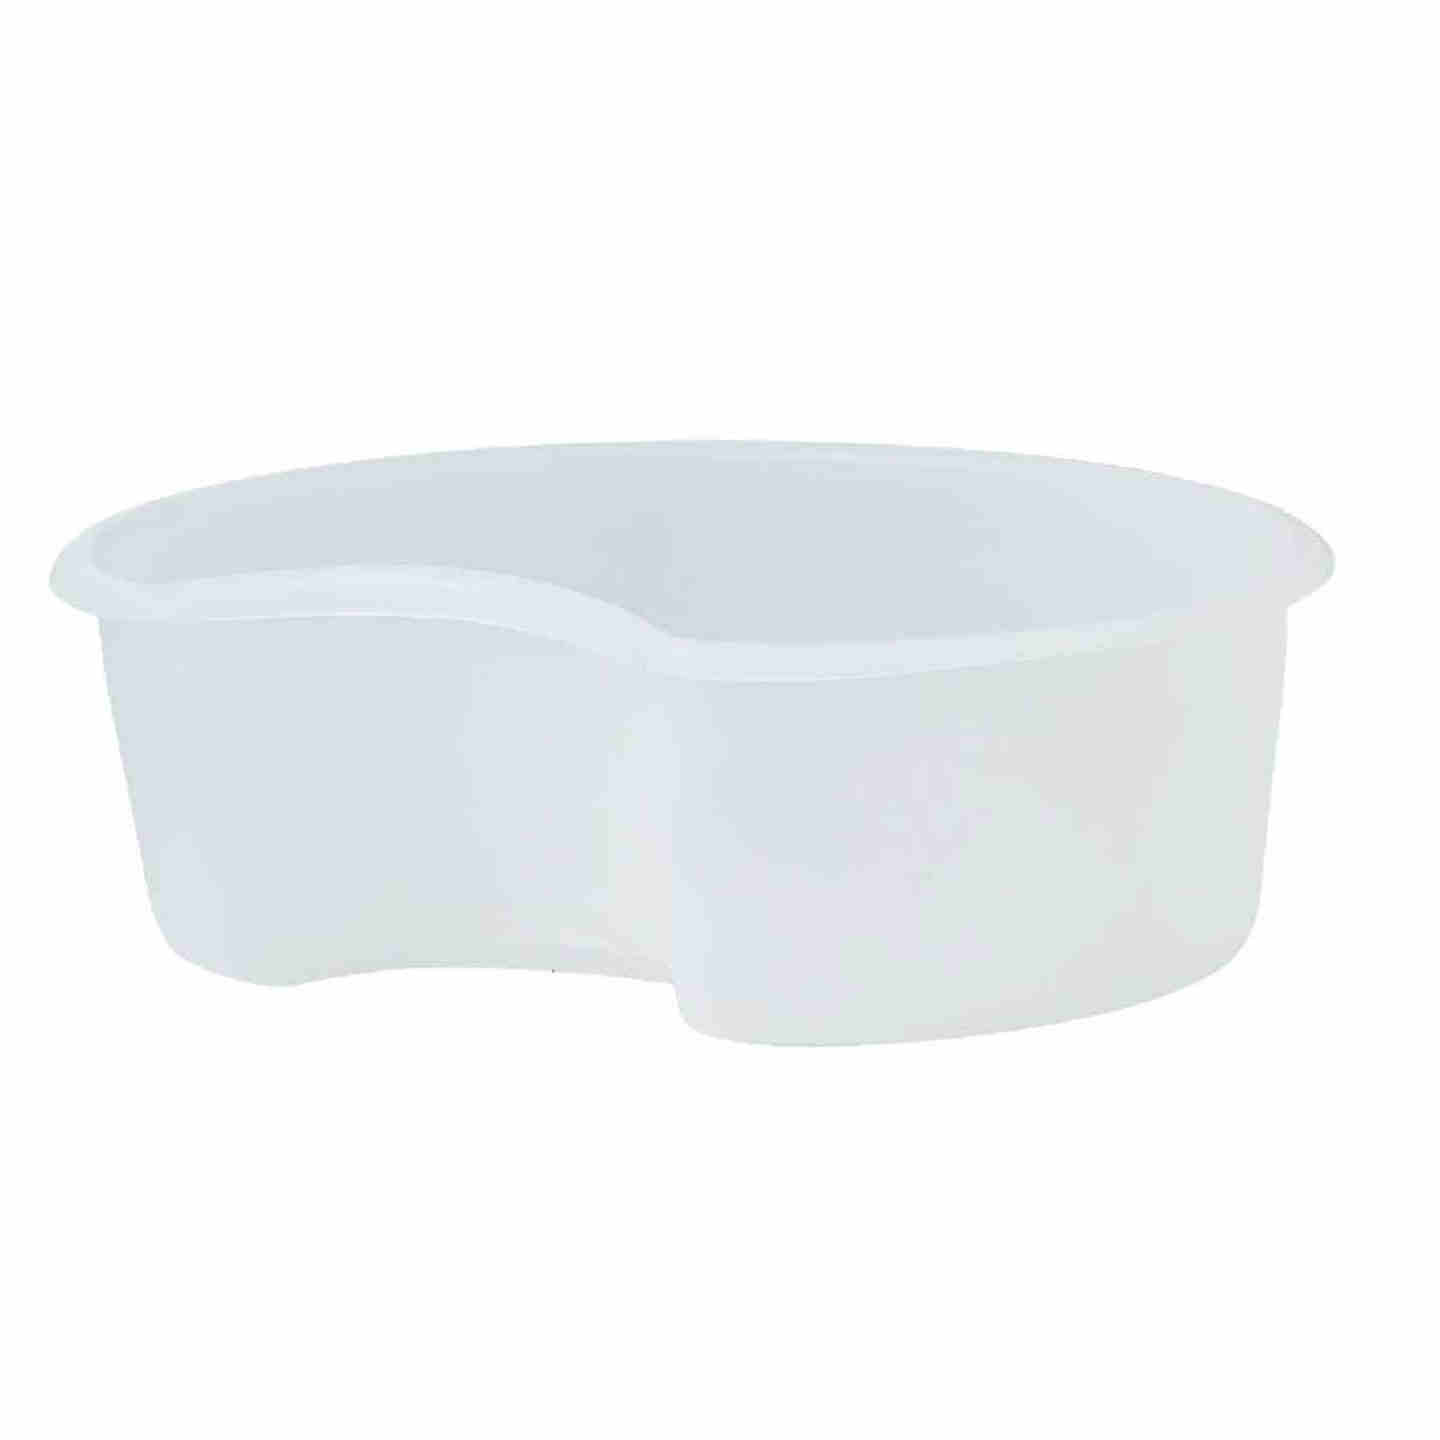 Leaktite 5 Gal. 28 In. x 11-3/4 In. White Pail Strainer Image 1